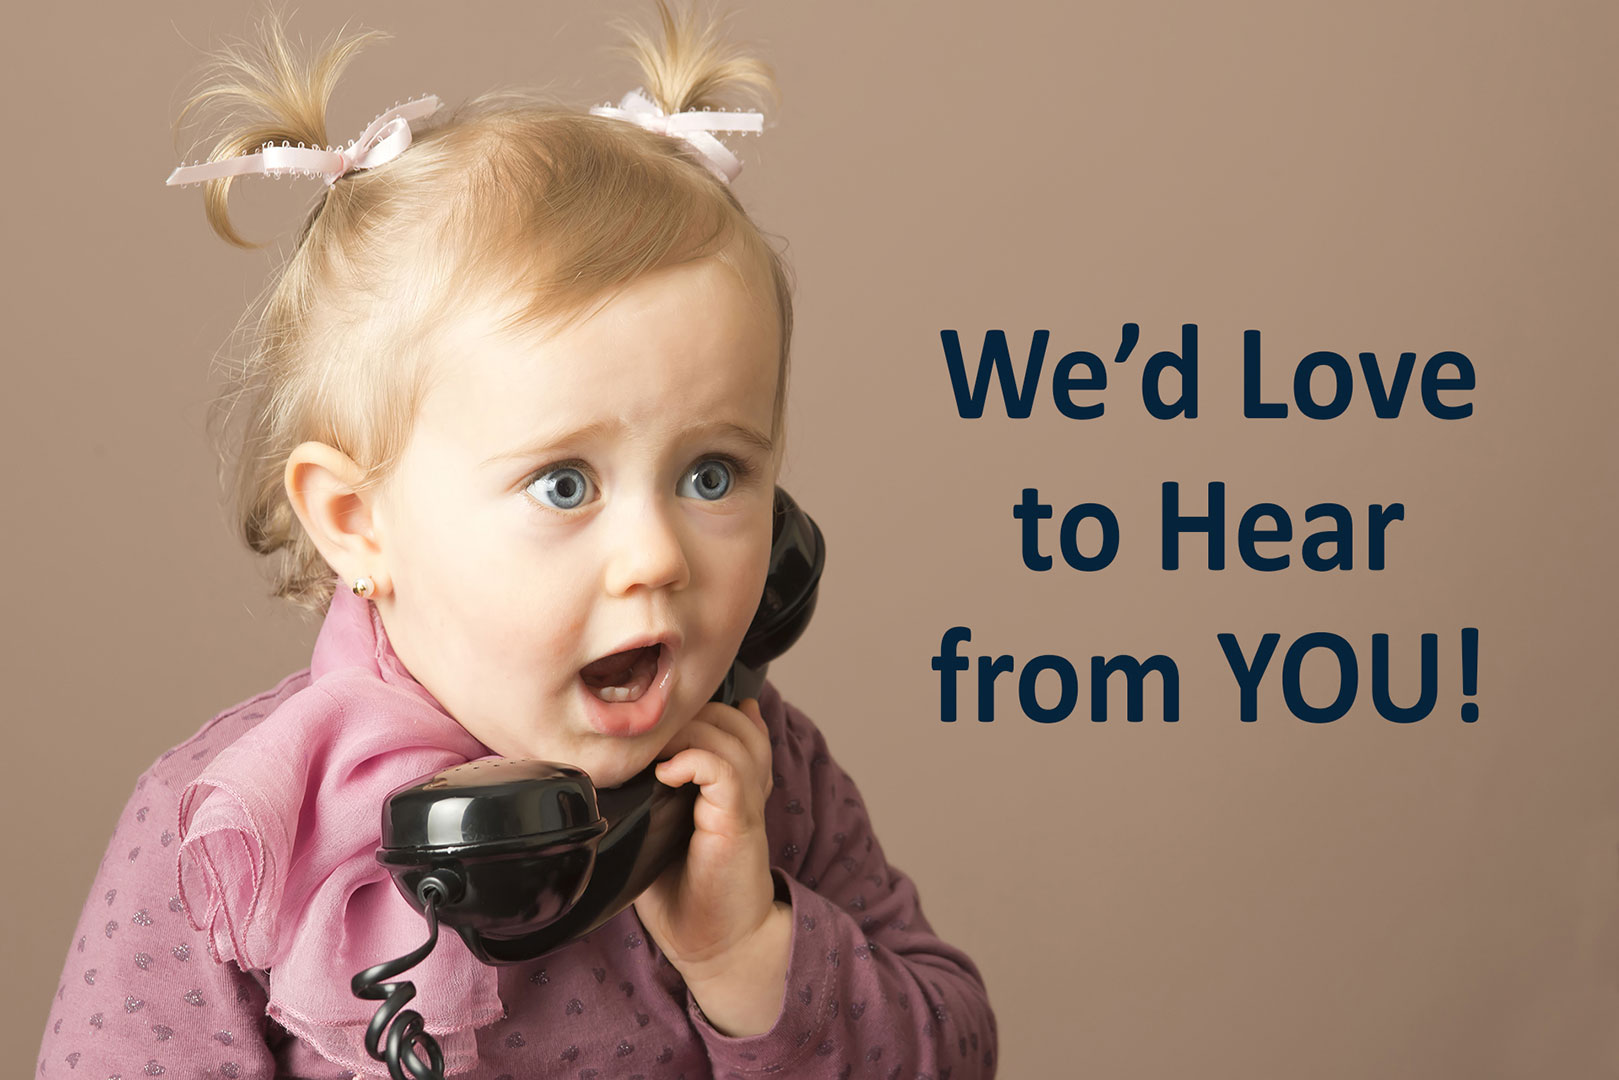 Effective Advertising - We'd Love to Hear from YOU!